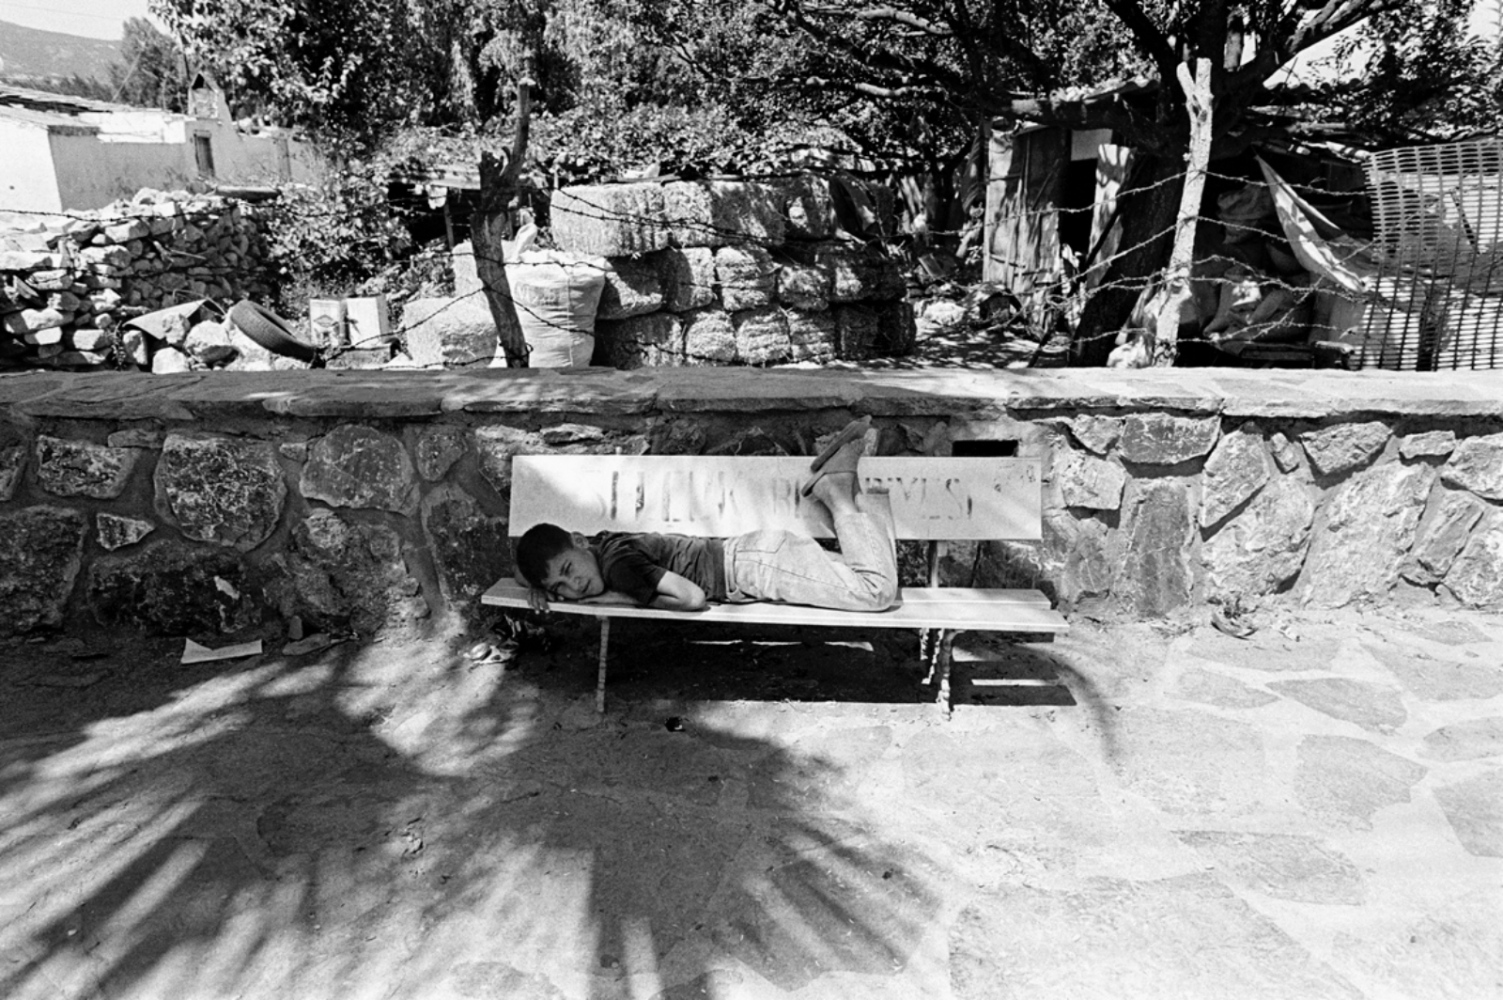 Boy Lying on Bench, Turkey, Summer 1997